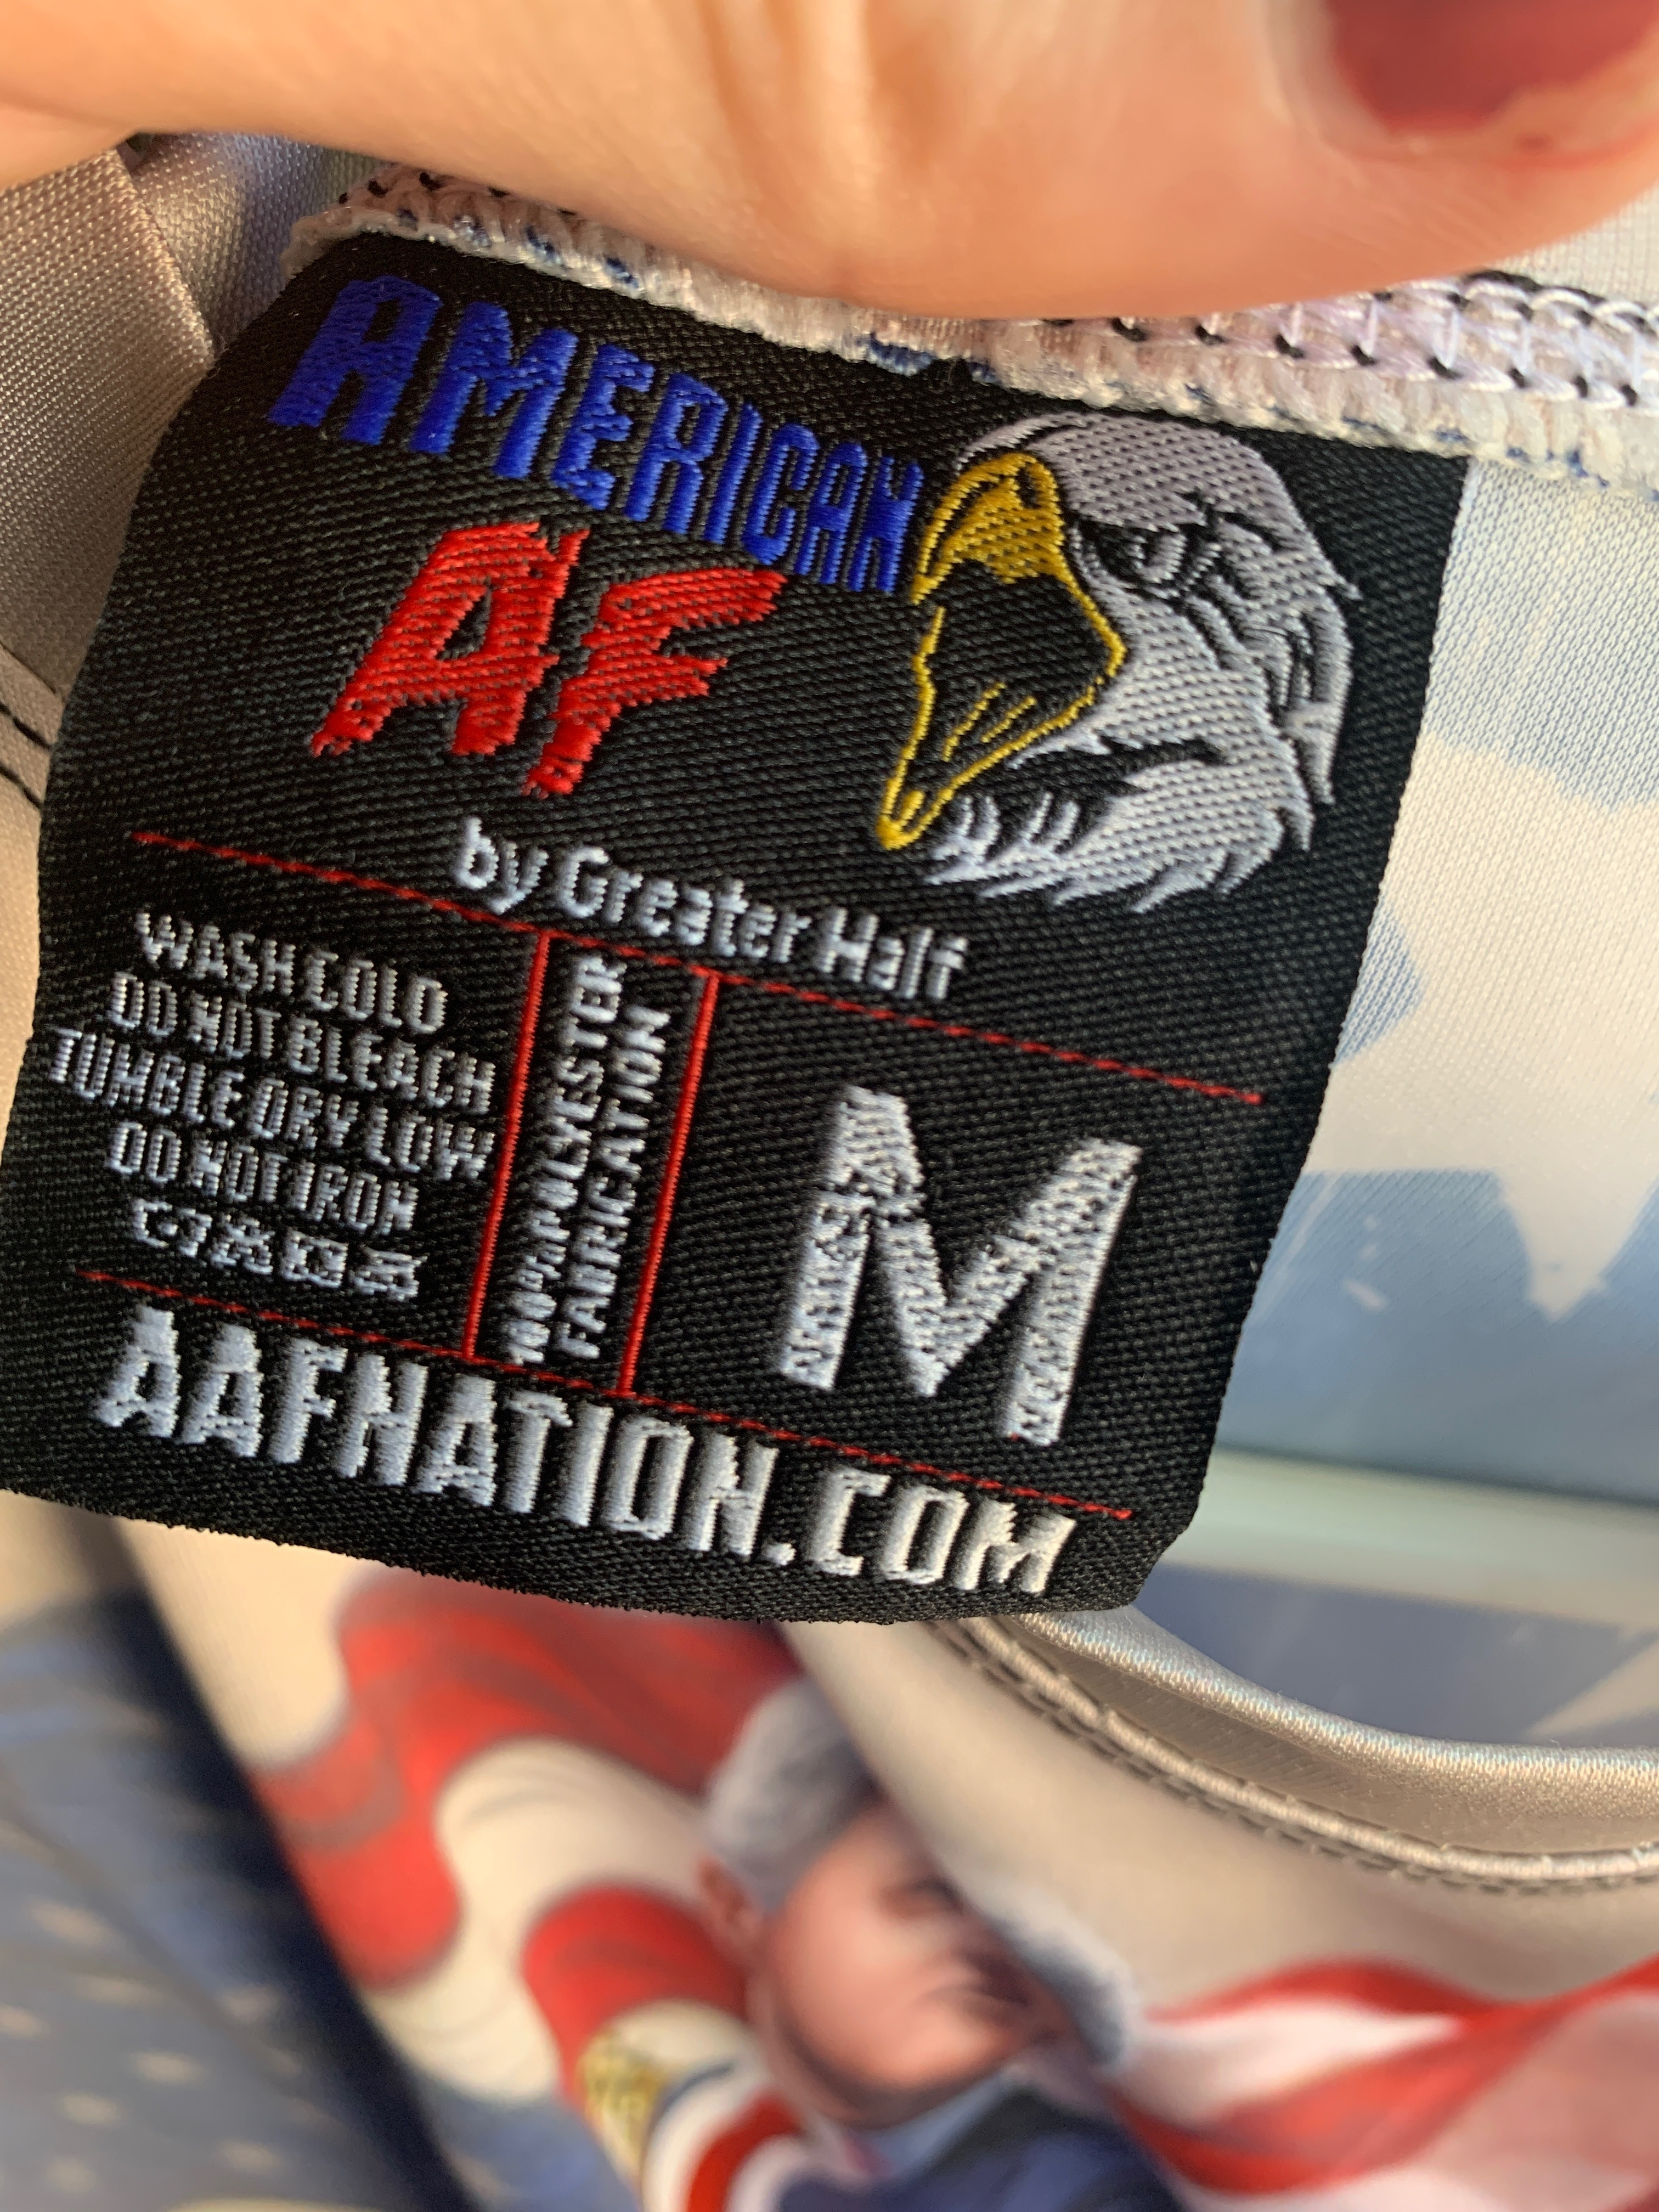 American Af Reviews 440 Reviews Of Aafnation Com Sitejabber American af | clothing and accessories for those who are more than american. american af reviews 440 reviews of